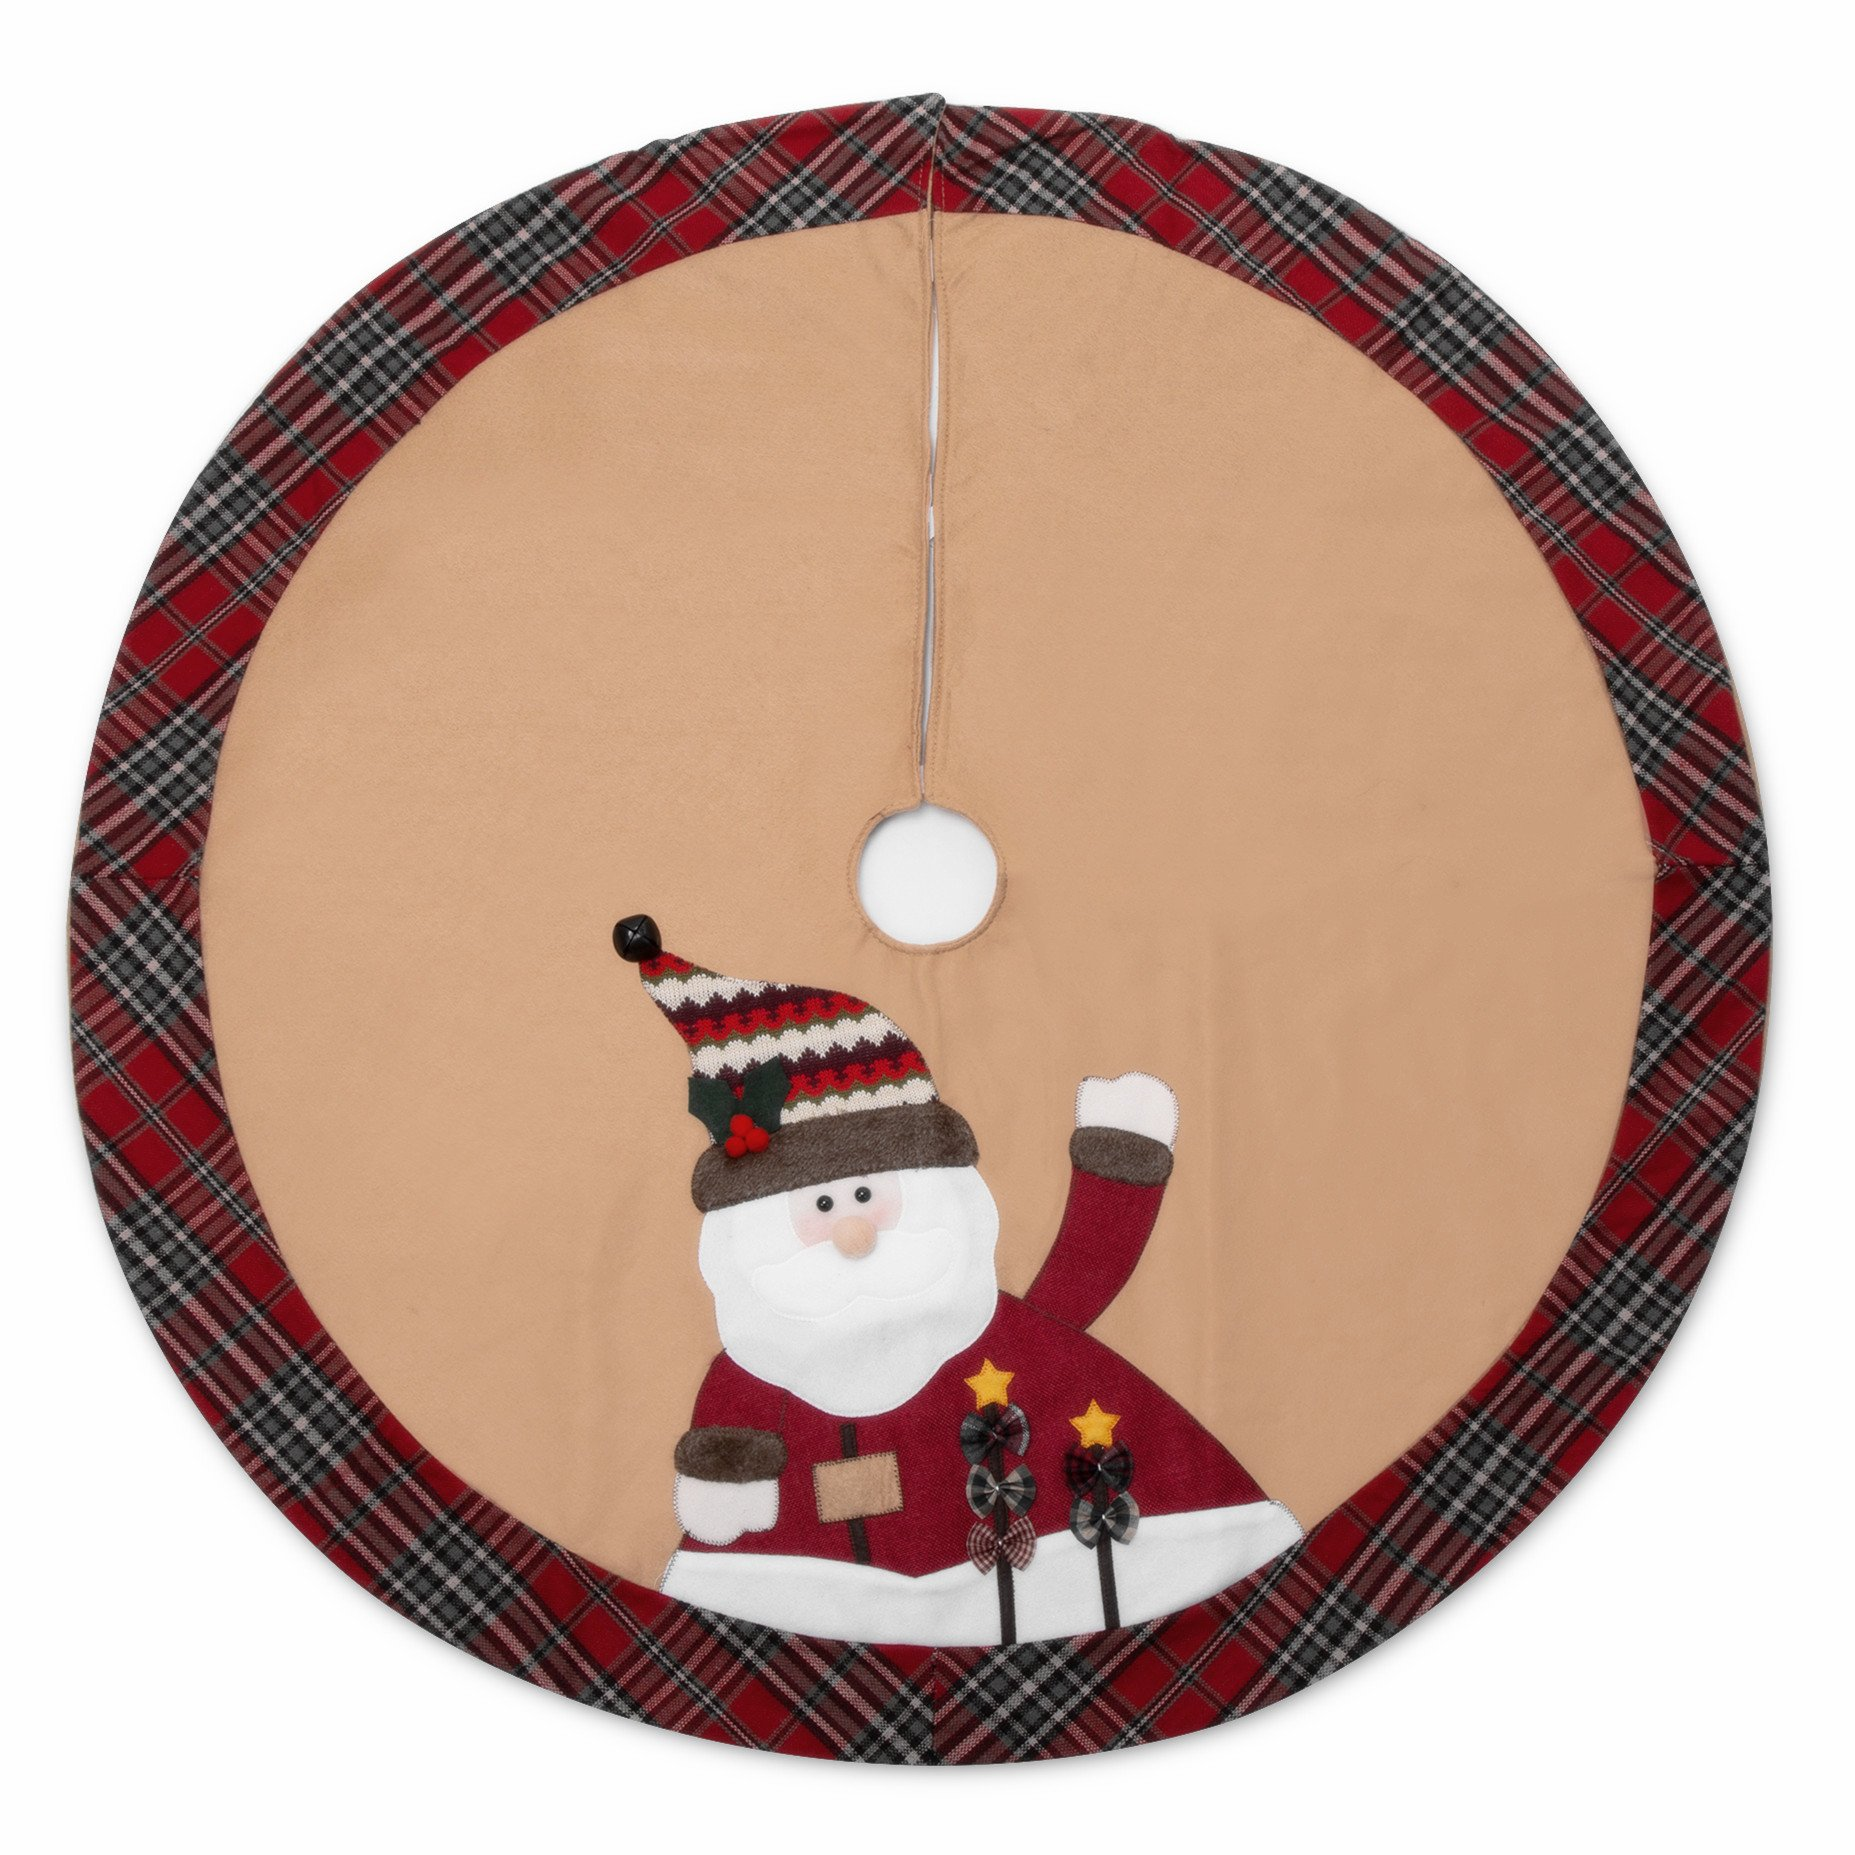 iPEGTOP 42'' Christmas Tree Skirt - Santa Xmas Tree Skirt Holiday Decoration Ornaments Camel Non-woven & Tartan Border